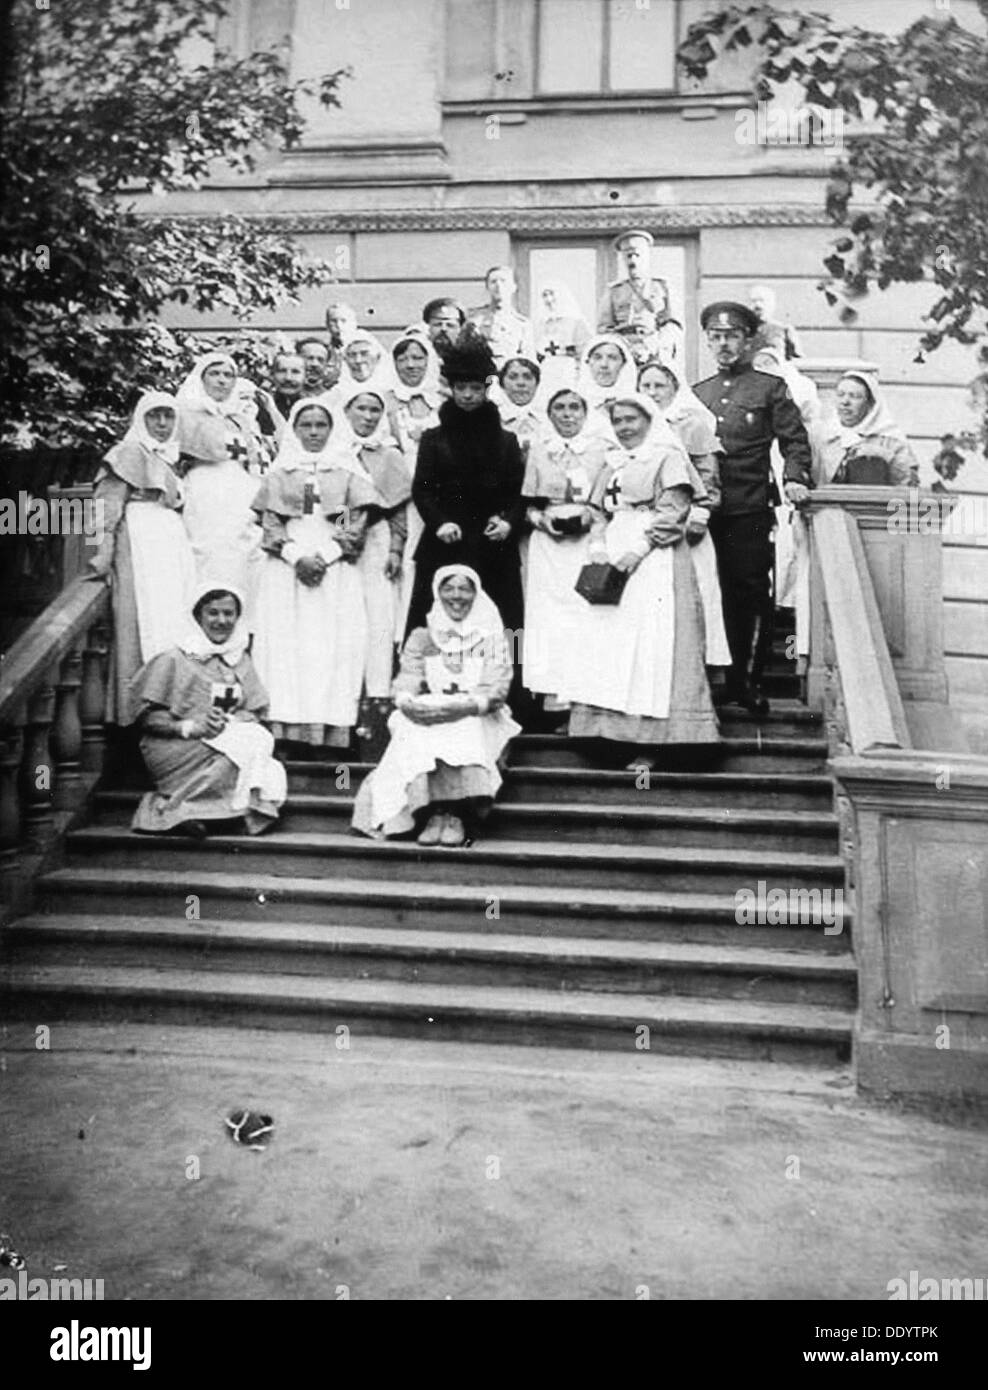 Dowager Empress Maria Feodorovna of Russia with nurses outside a hospital, Russia, 1916. - Stock Image